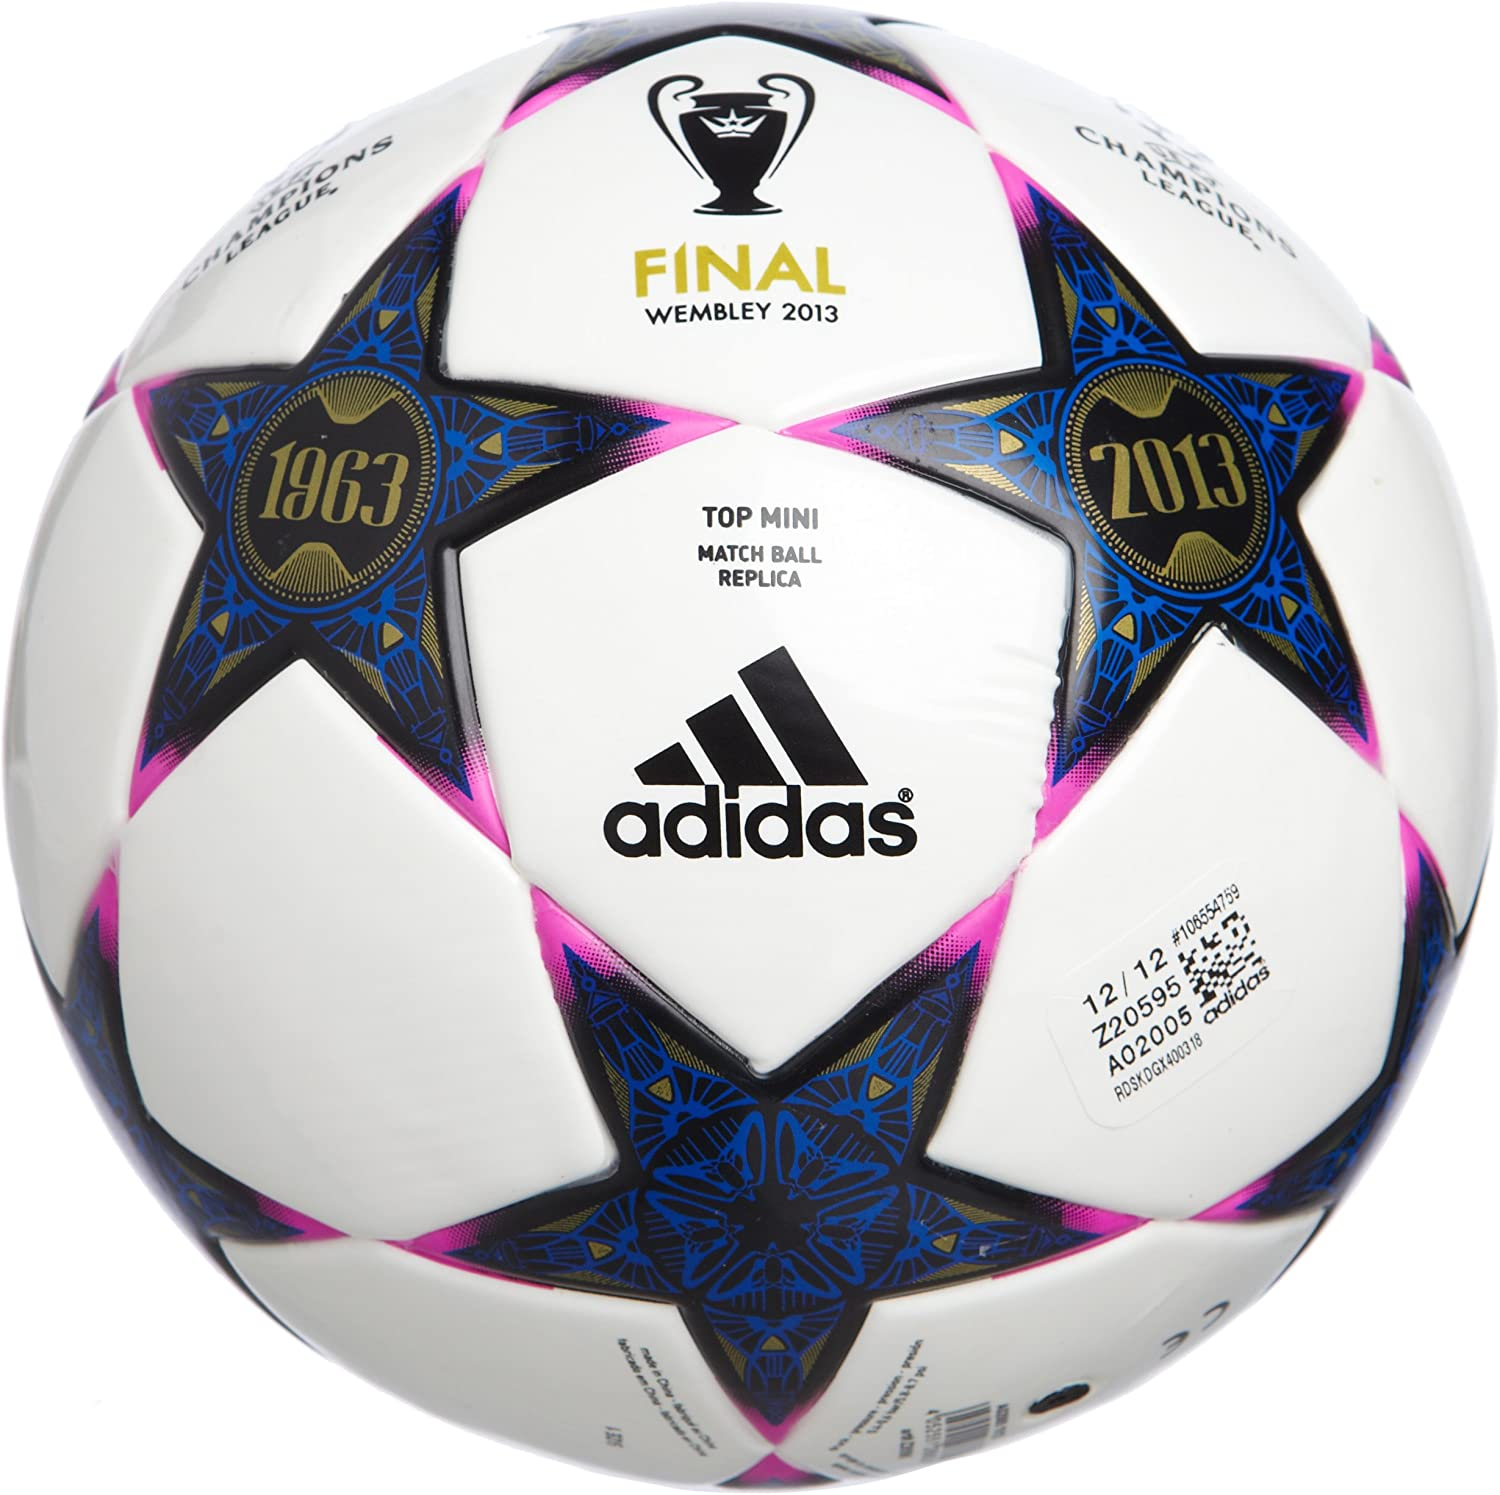 adidas Mini balón de fútbol Finale Wembley Champions League 2013 ...